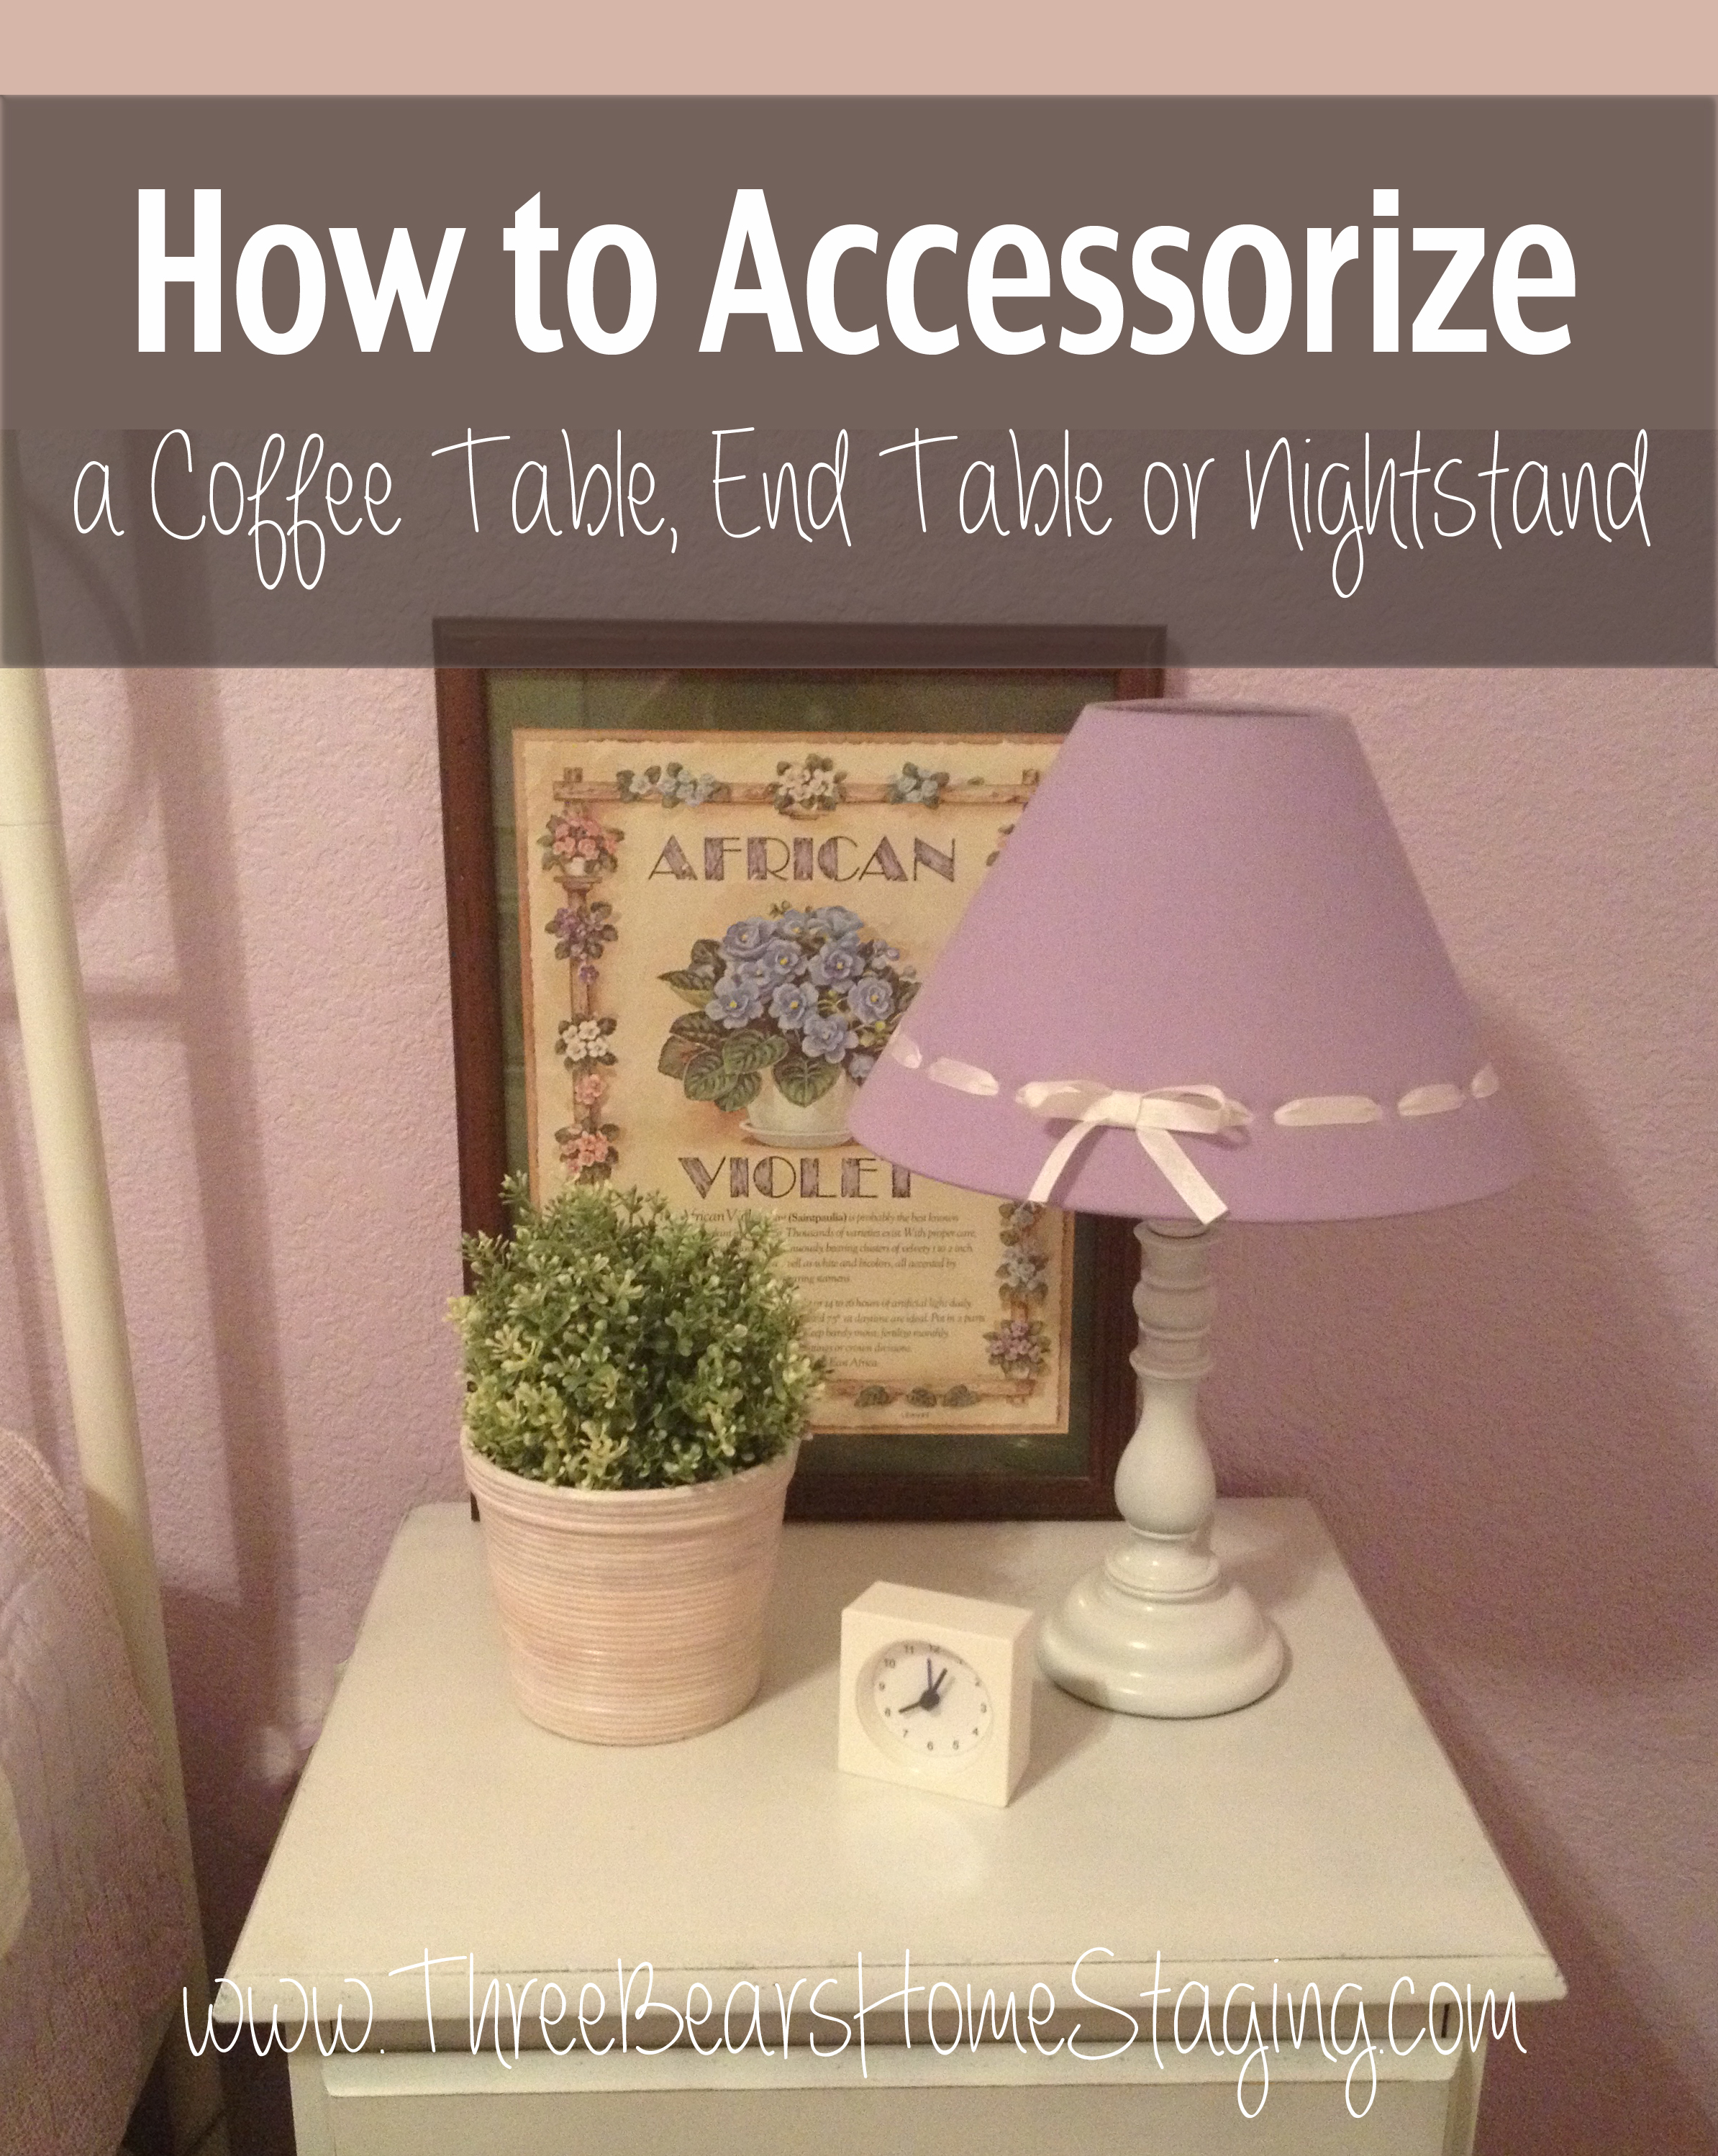 How To Accessorize A Coffee Table, End Table Or Nightstand